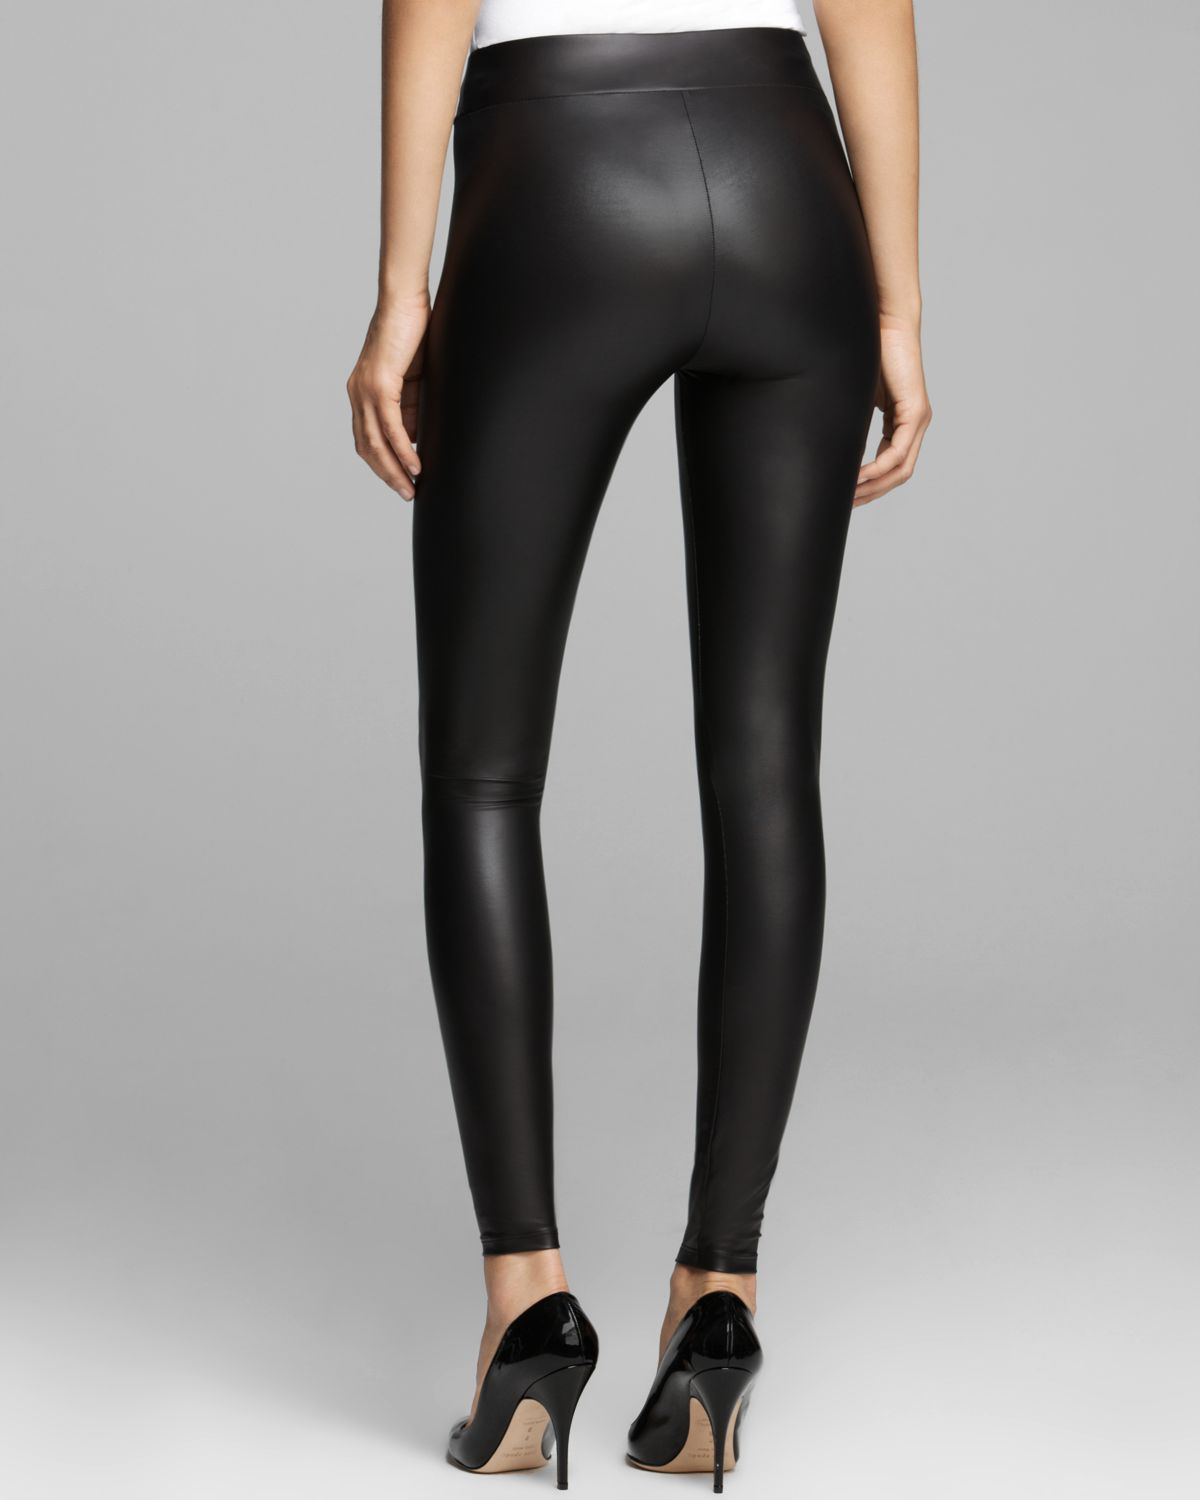 c4f25af540b0e Guess Leggings - Matte Faux Leather in Gray | Lyst